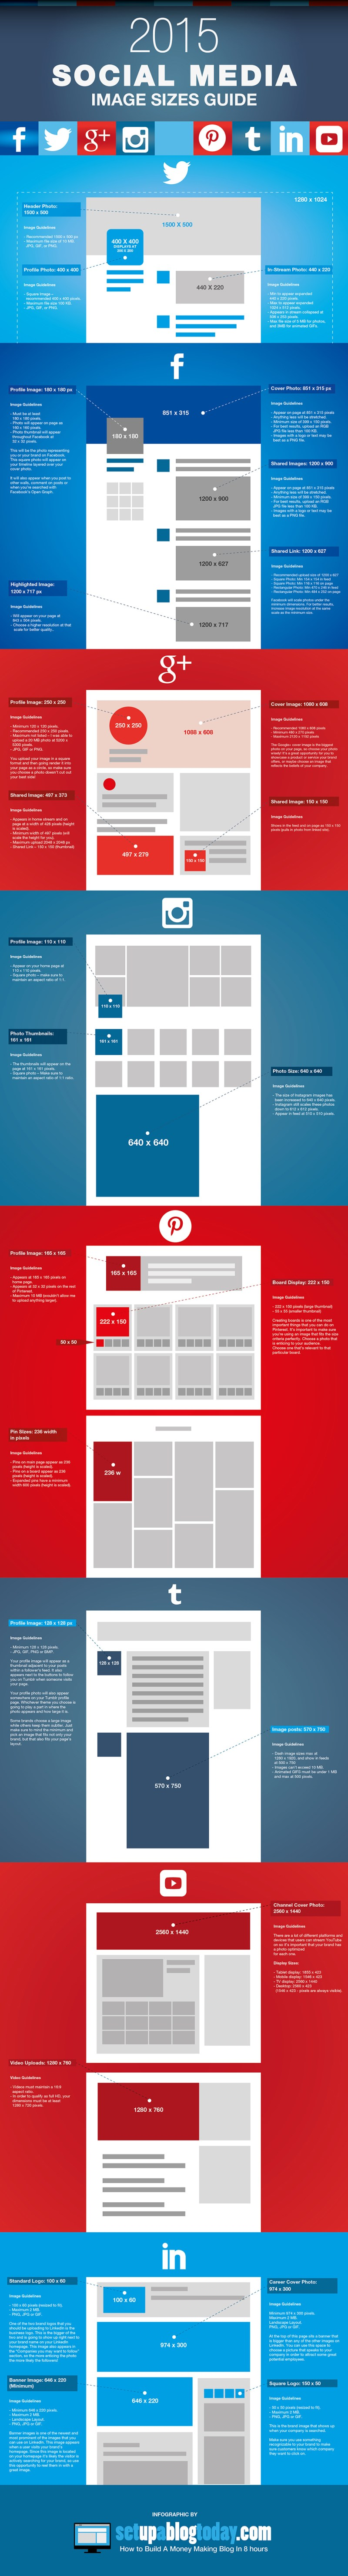 2015 Social Media Image Size Guide